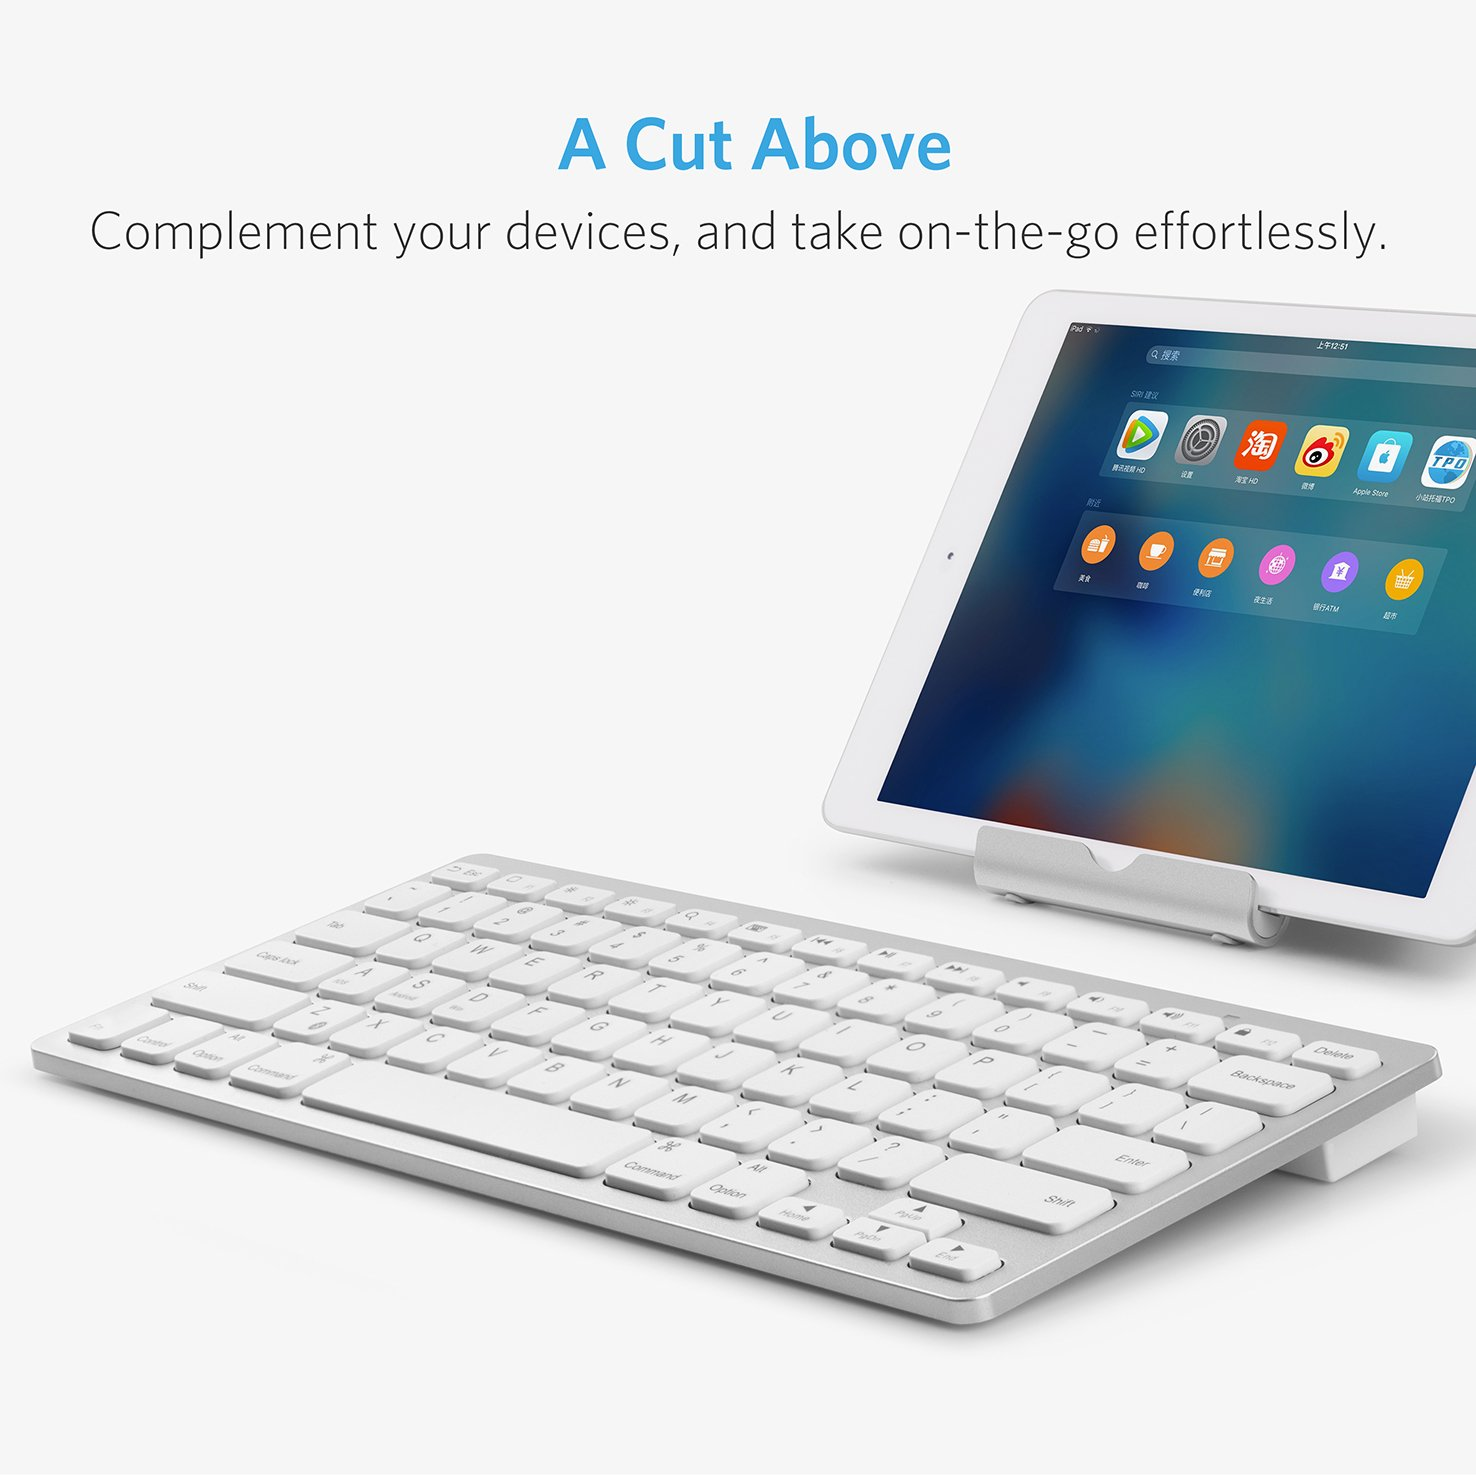 Anker Bluetooth Ultra-Slim Keyboard for iPad Air 2 / Air, iPad Pro, iPad mini 4 / 3 / 2 / 1, iPad 4 / 3 / 2 , New iPad 9.7''(2018/ 2017), Galaxy Tabs and Other Mobile Devices (White) by Anker (Image #2)